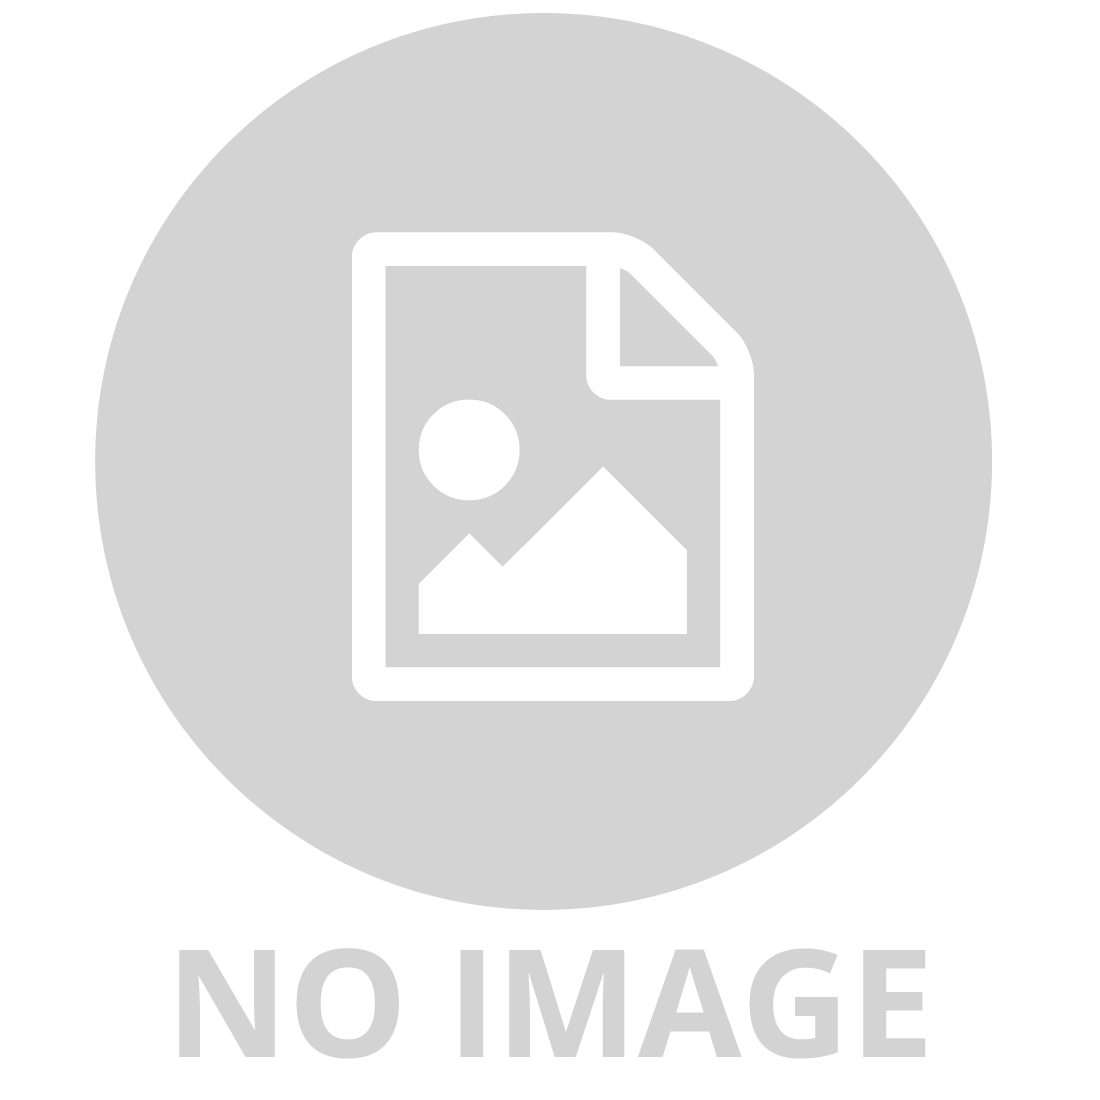 TAMIYA TS 78 FIELD GRAY SPRAY PAINT FOR PLASTICS